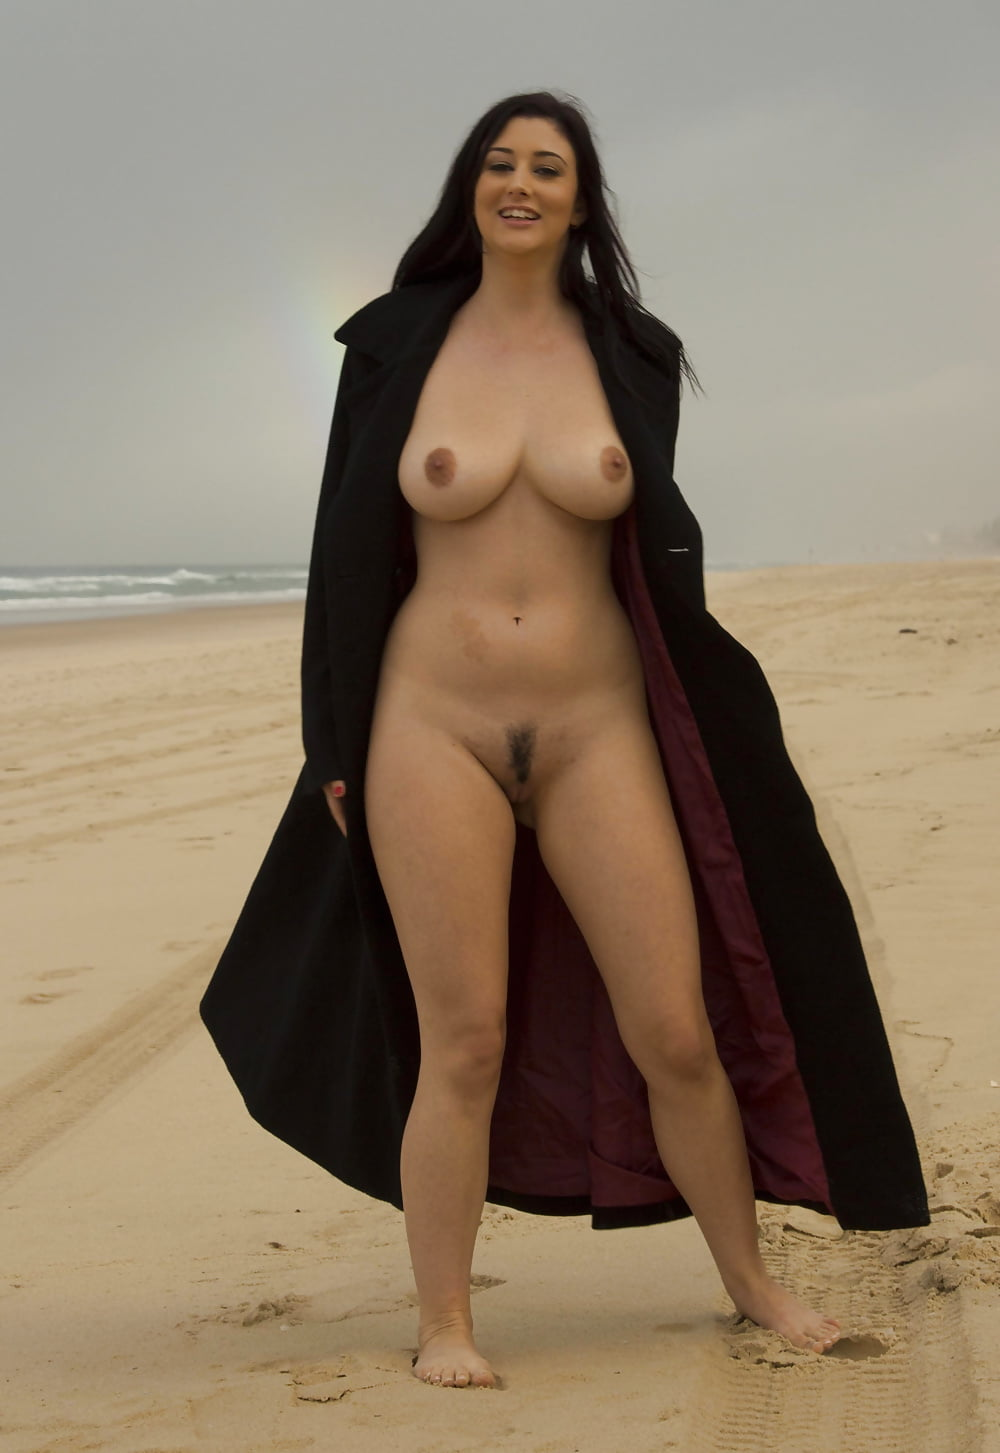 Naked Arab Woman